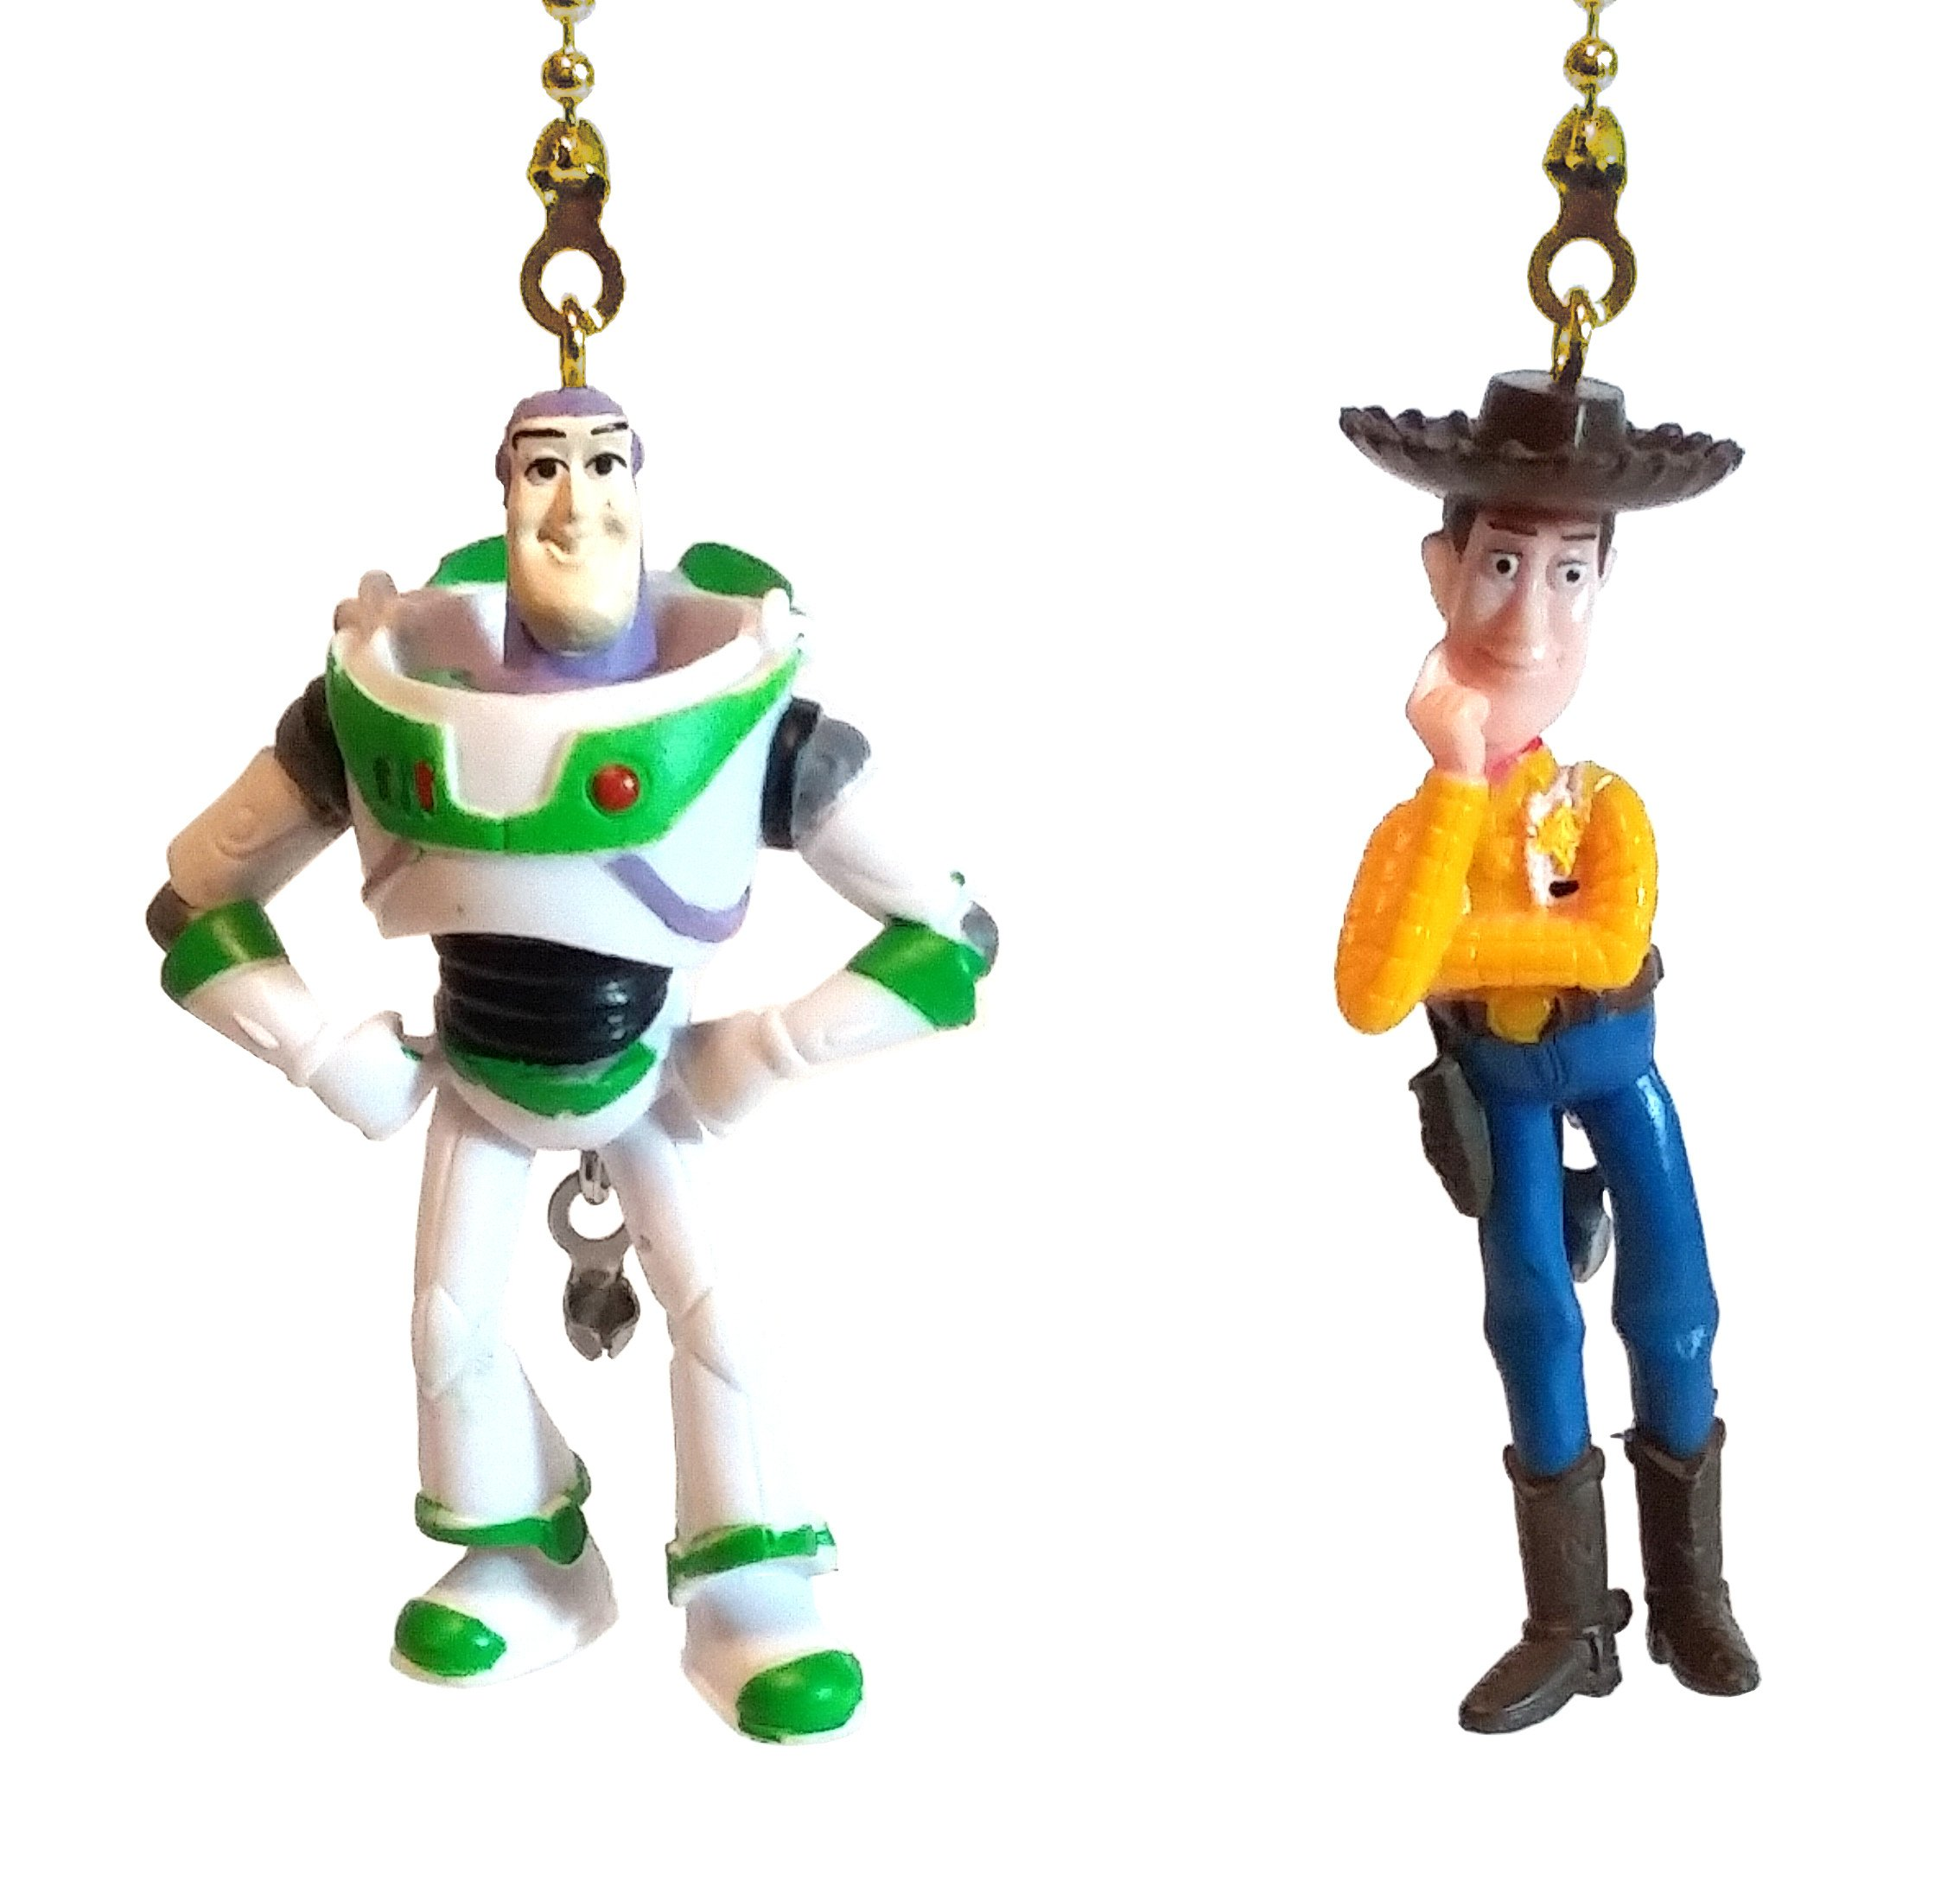 Toy Story Buzz Lightyear & Woody Fan Pull Set by Wooden Androyd Studio - Kid's Room Nursery Decor, Gift for Kids (Buzz & Woody Brass)